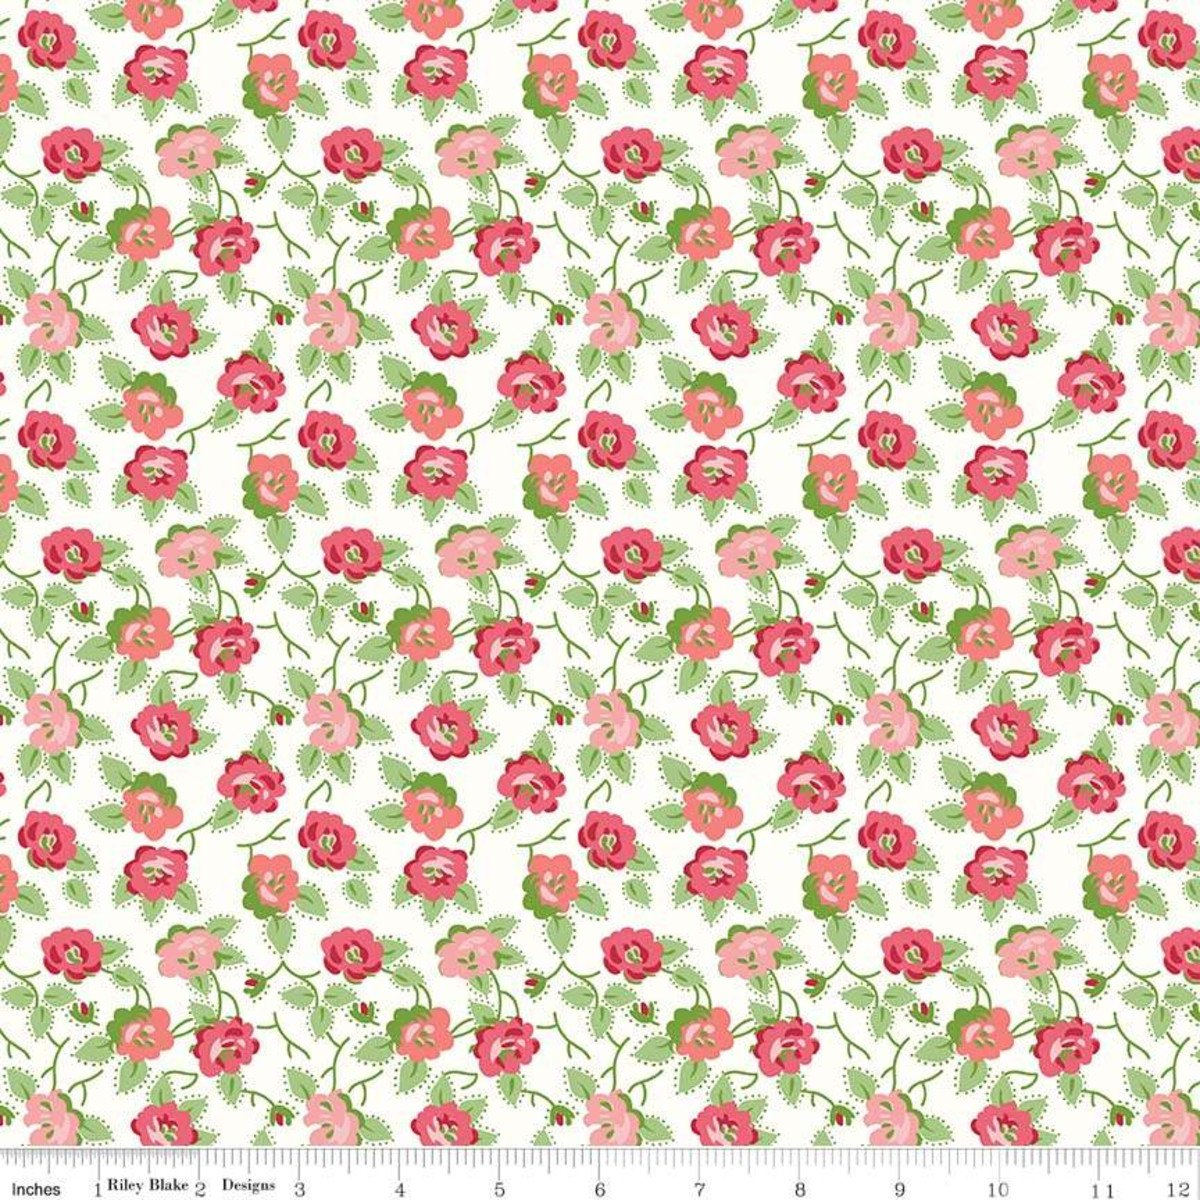 Fabric Granny Chic Dishes C8513-Pink